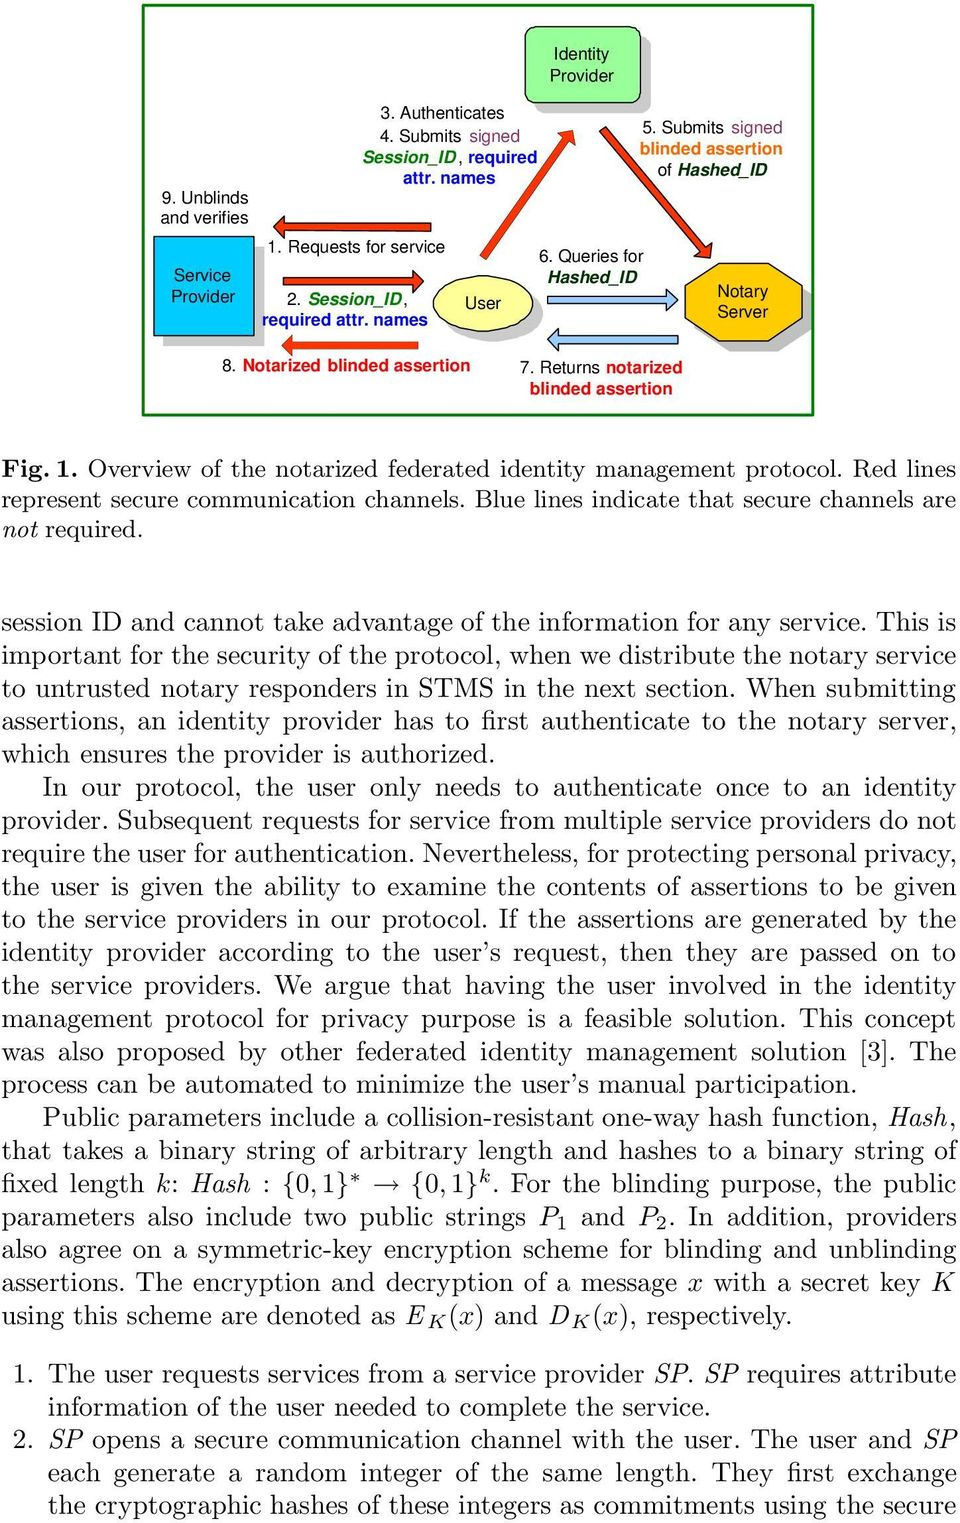 Overview of the notarized federated identity management protocol. Red lines represent secure communication channels. Blue lines indicate that secure channels are not required.